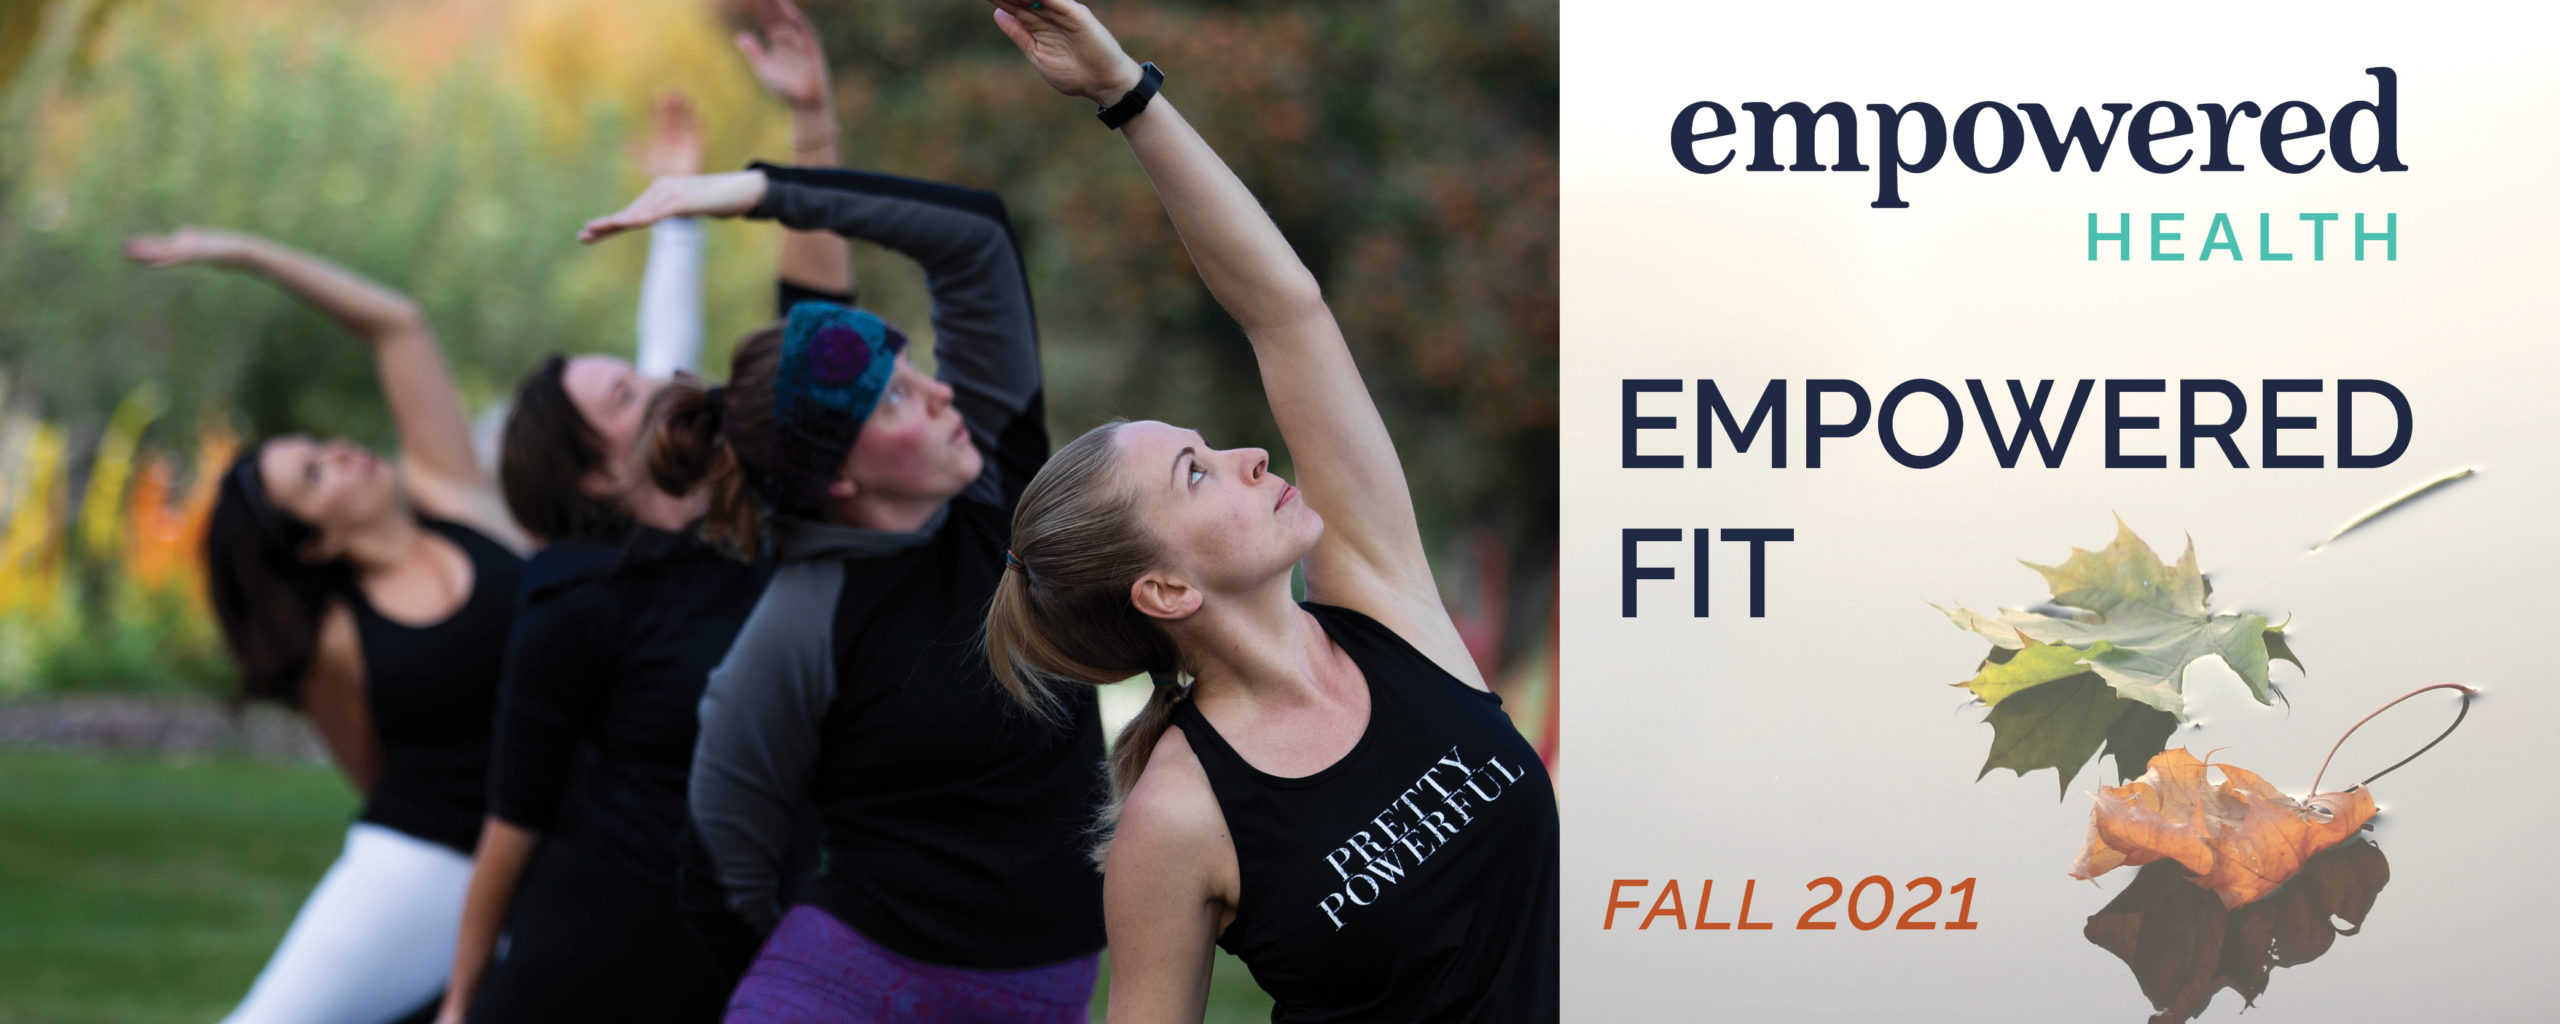 Empowered Fit Fall 2021